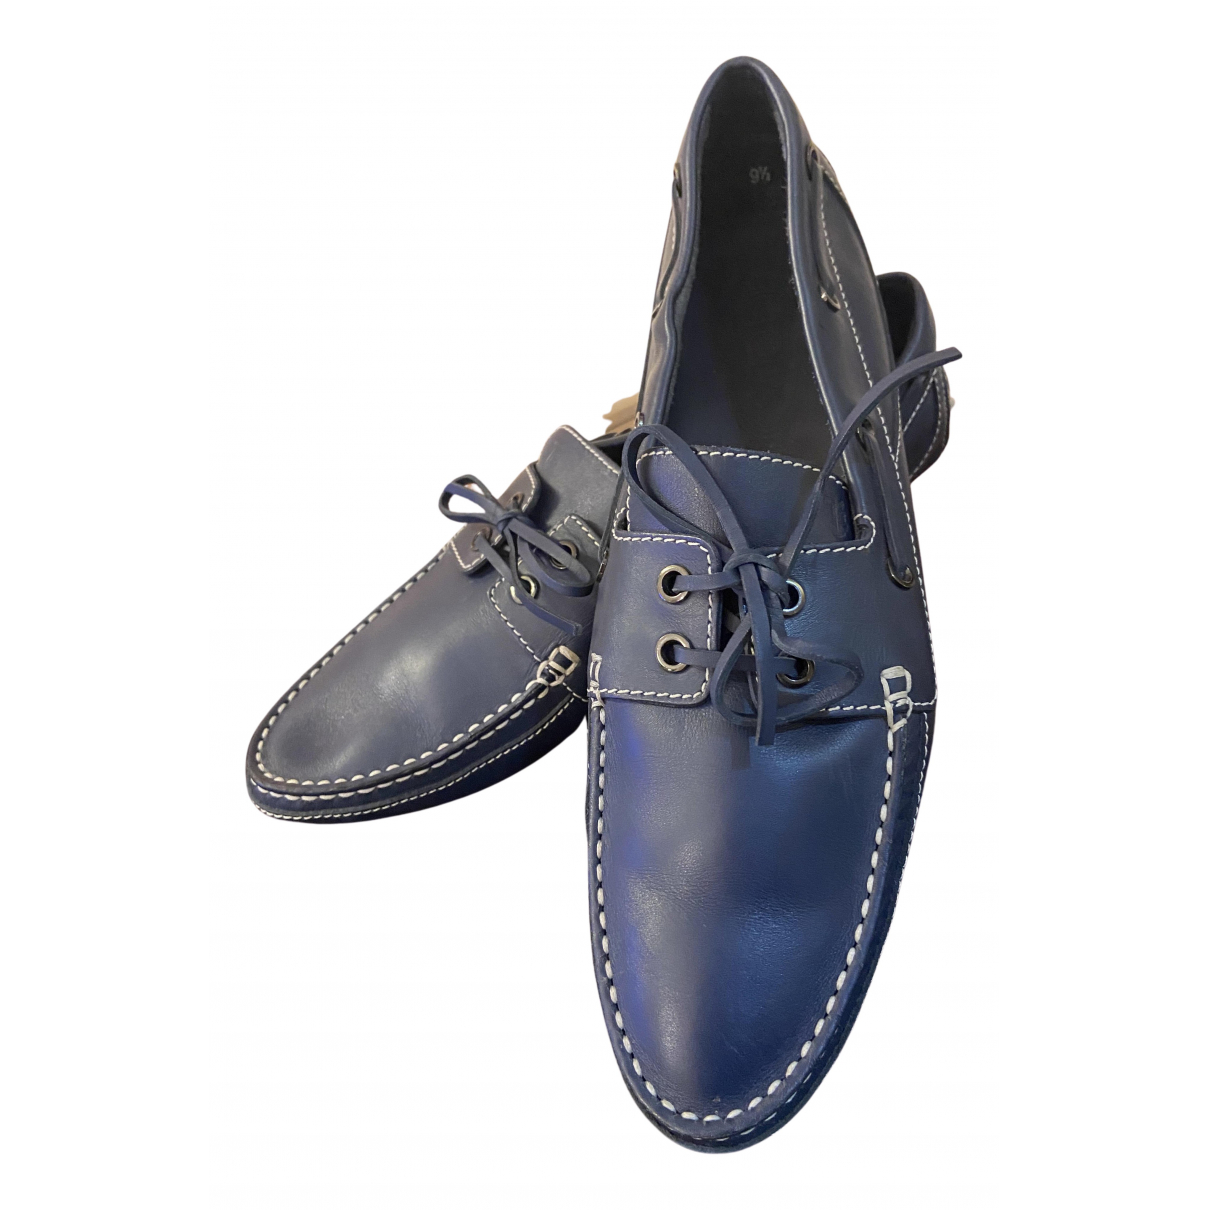 Tod's N Navy Leather Flats for Men 9.5 UK